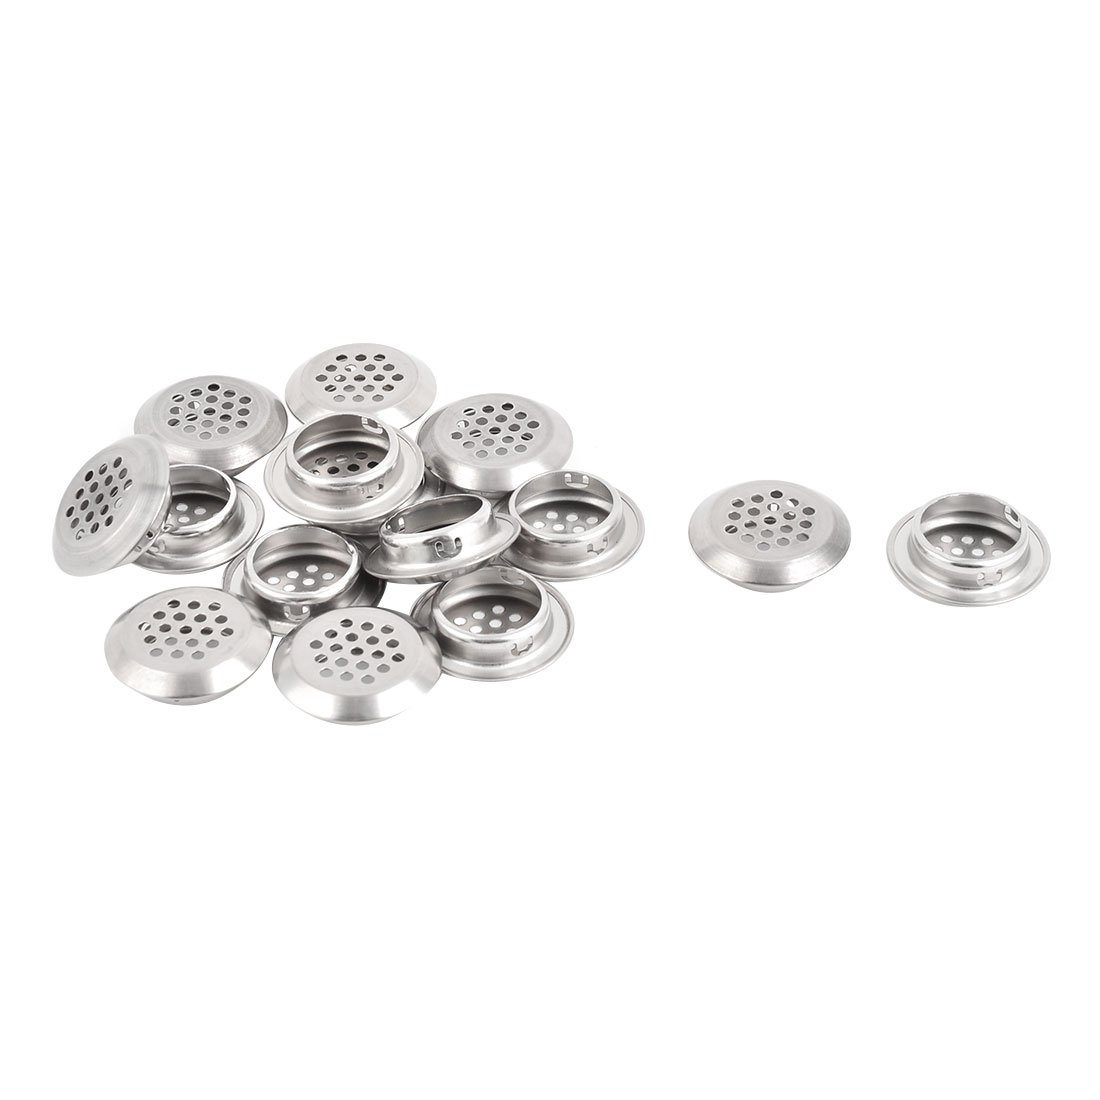 uxcell Stainless Steel Hotel Dormitory Round Sink Basin Residue Stopper Strainer 15 Pcs